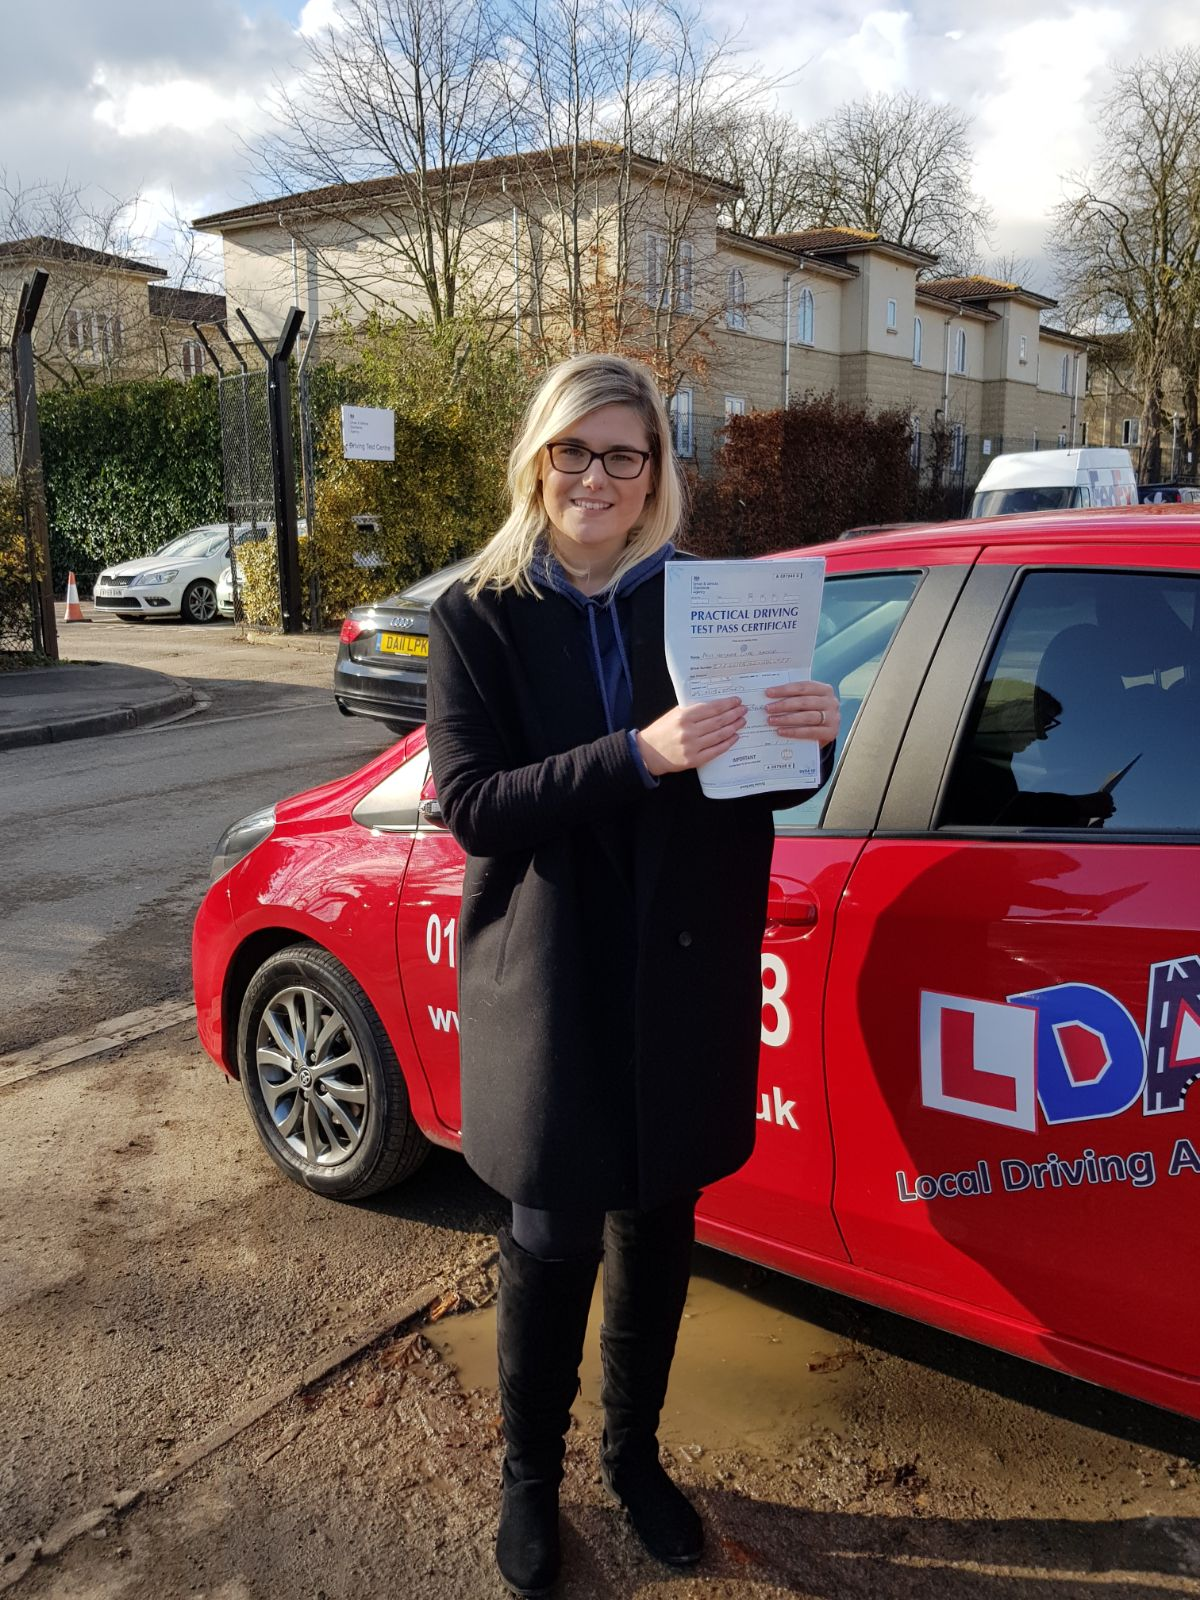 Cheap Driving Lessons >> How Much Are Driving Lessons in Oxford? Prices 2020 Manual Automatic Discounts